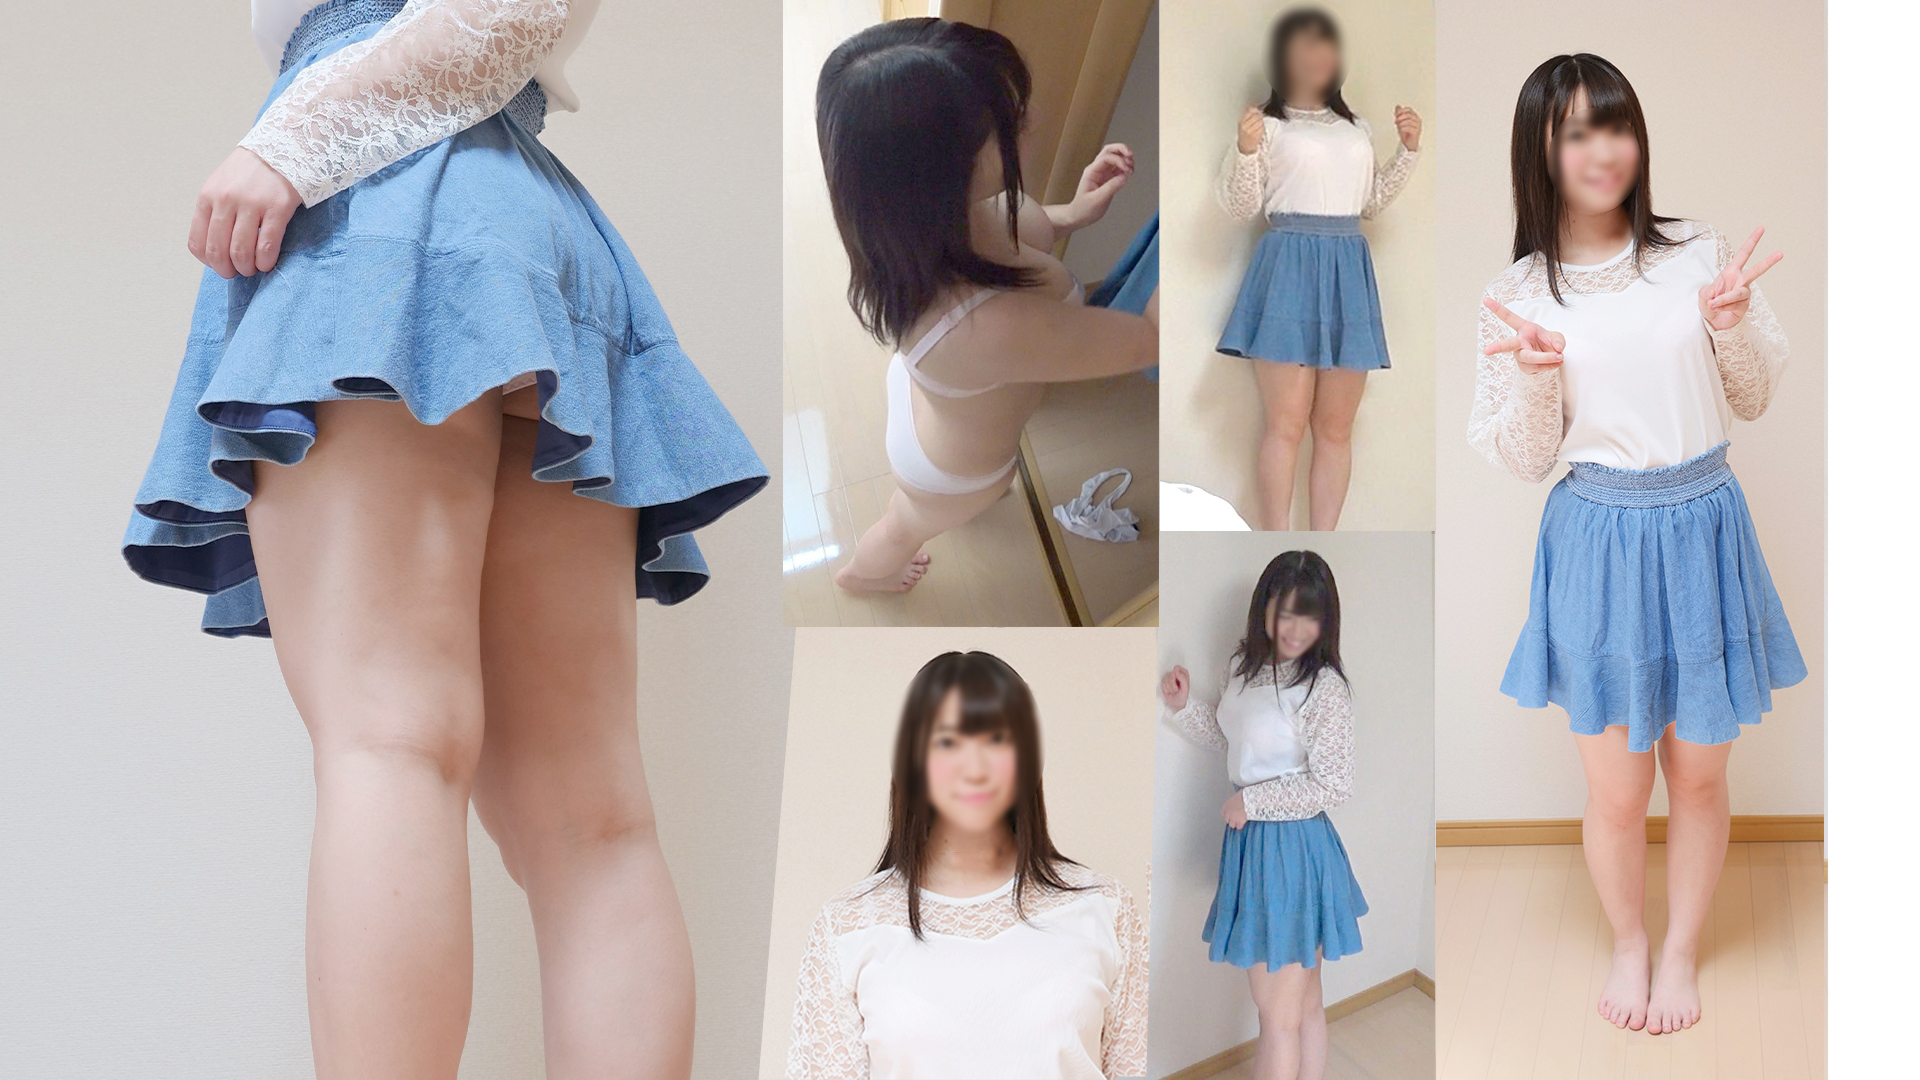 FC2 PPV 1101576 Amateur underwear in private photo session at home vol. 076 Amateur female college student